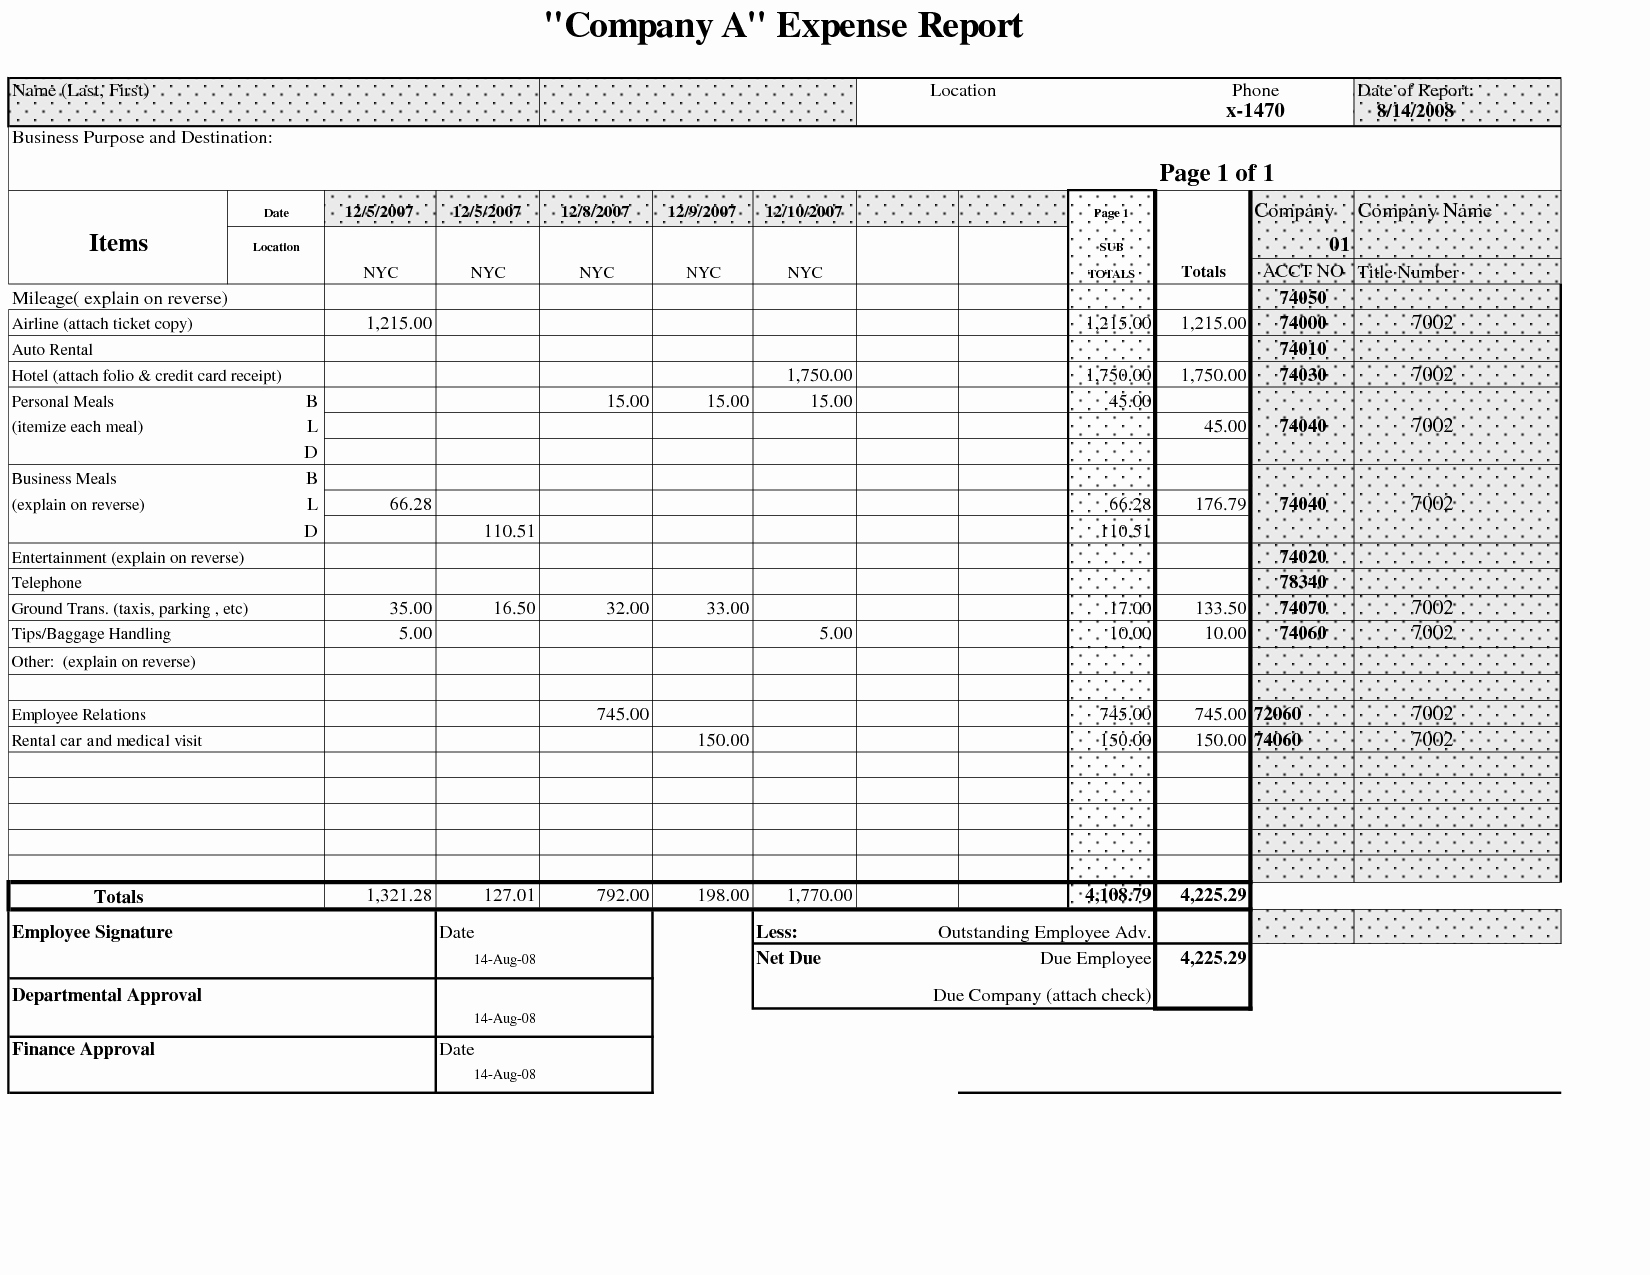 Monthly Expense Report Template Beautiful 15 Professional Samples to Create Business Annual Expense